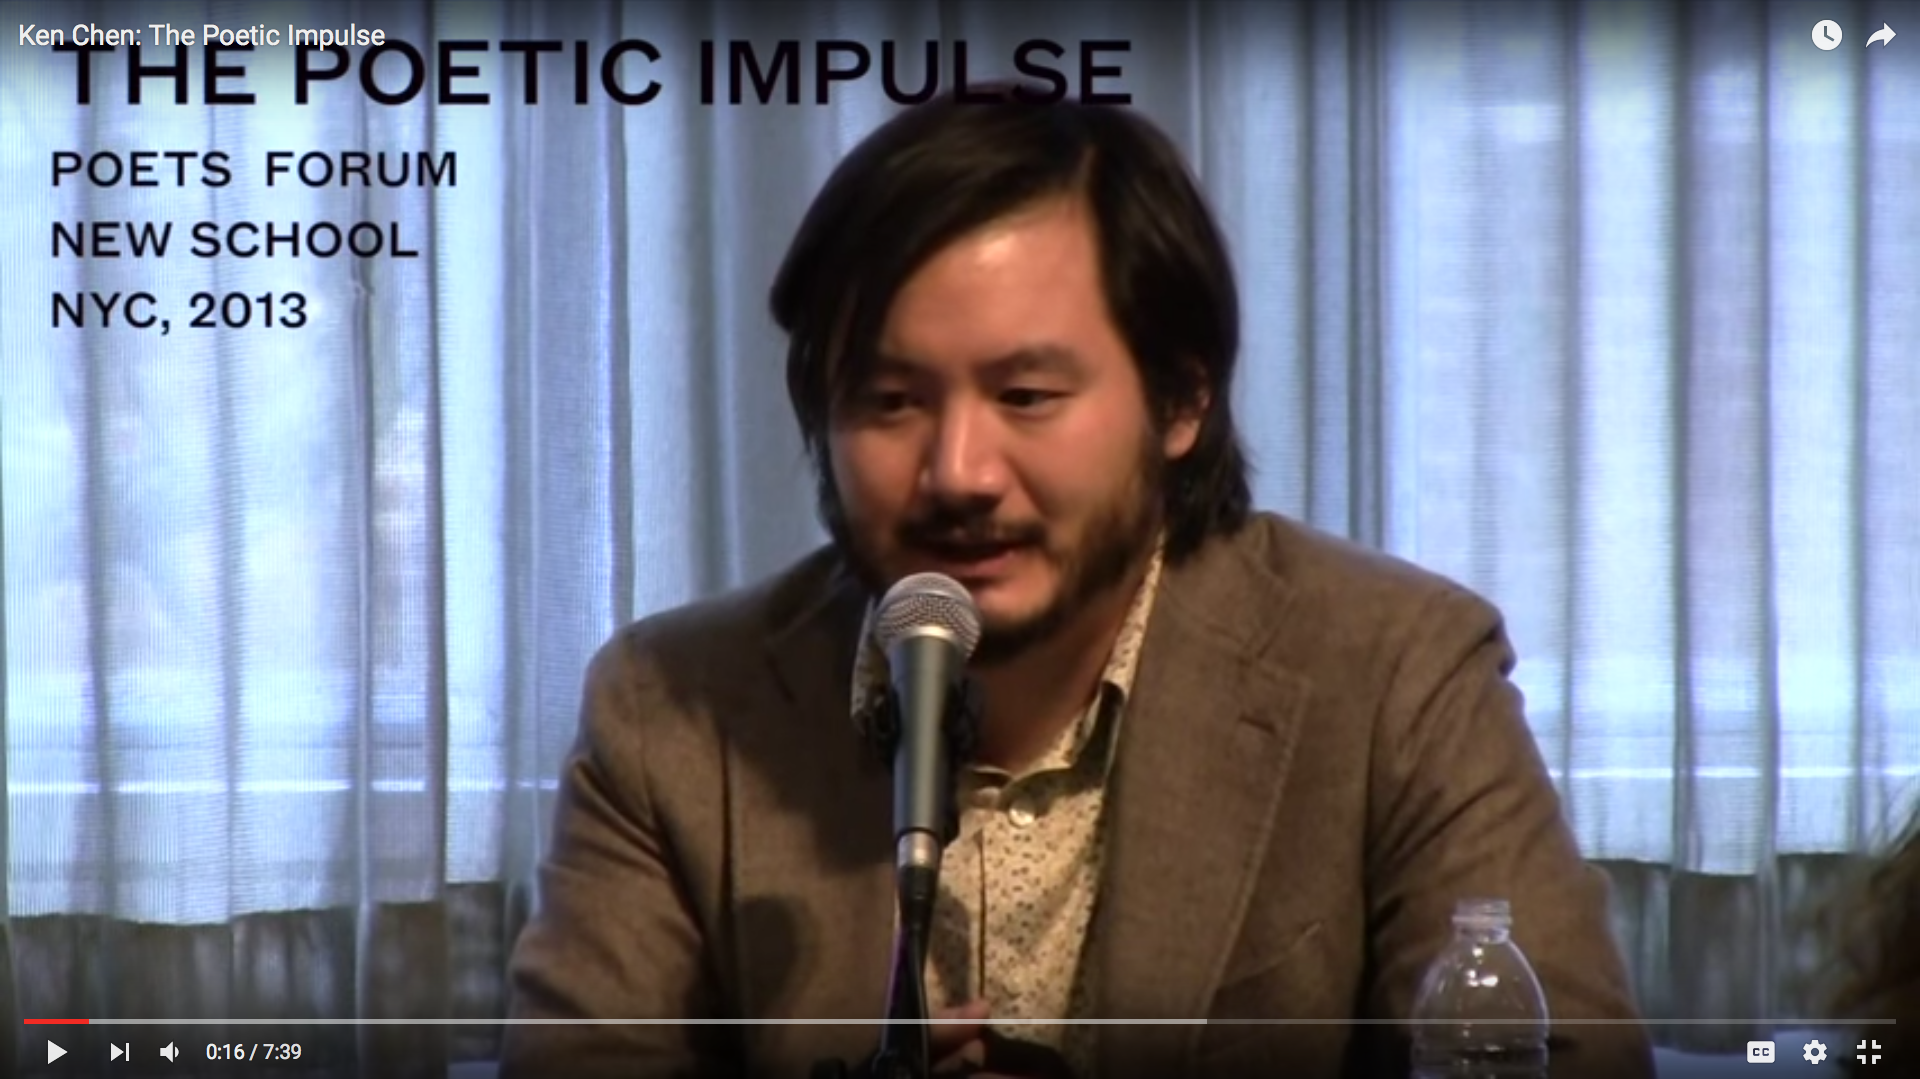 Ken Chen: The Poetic Impulse